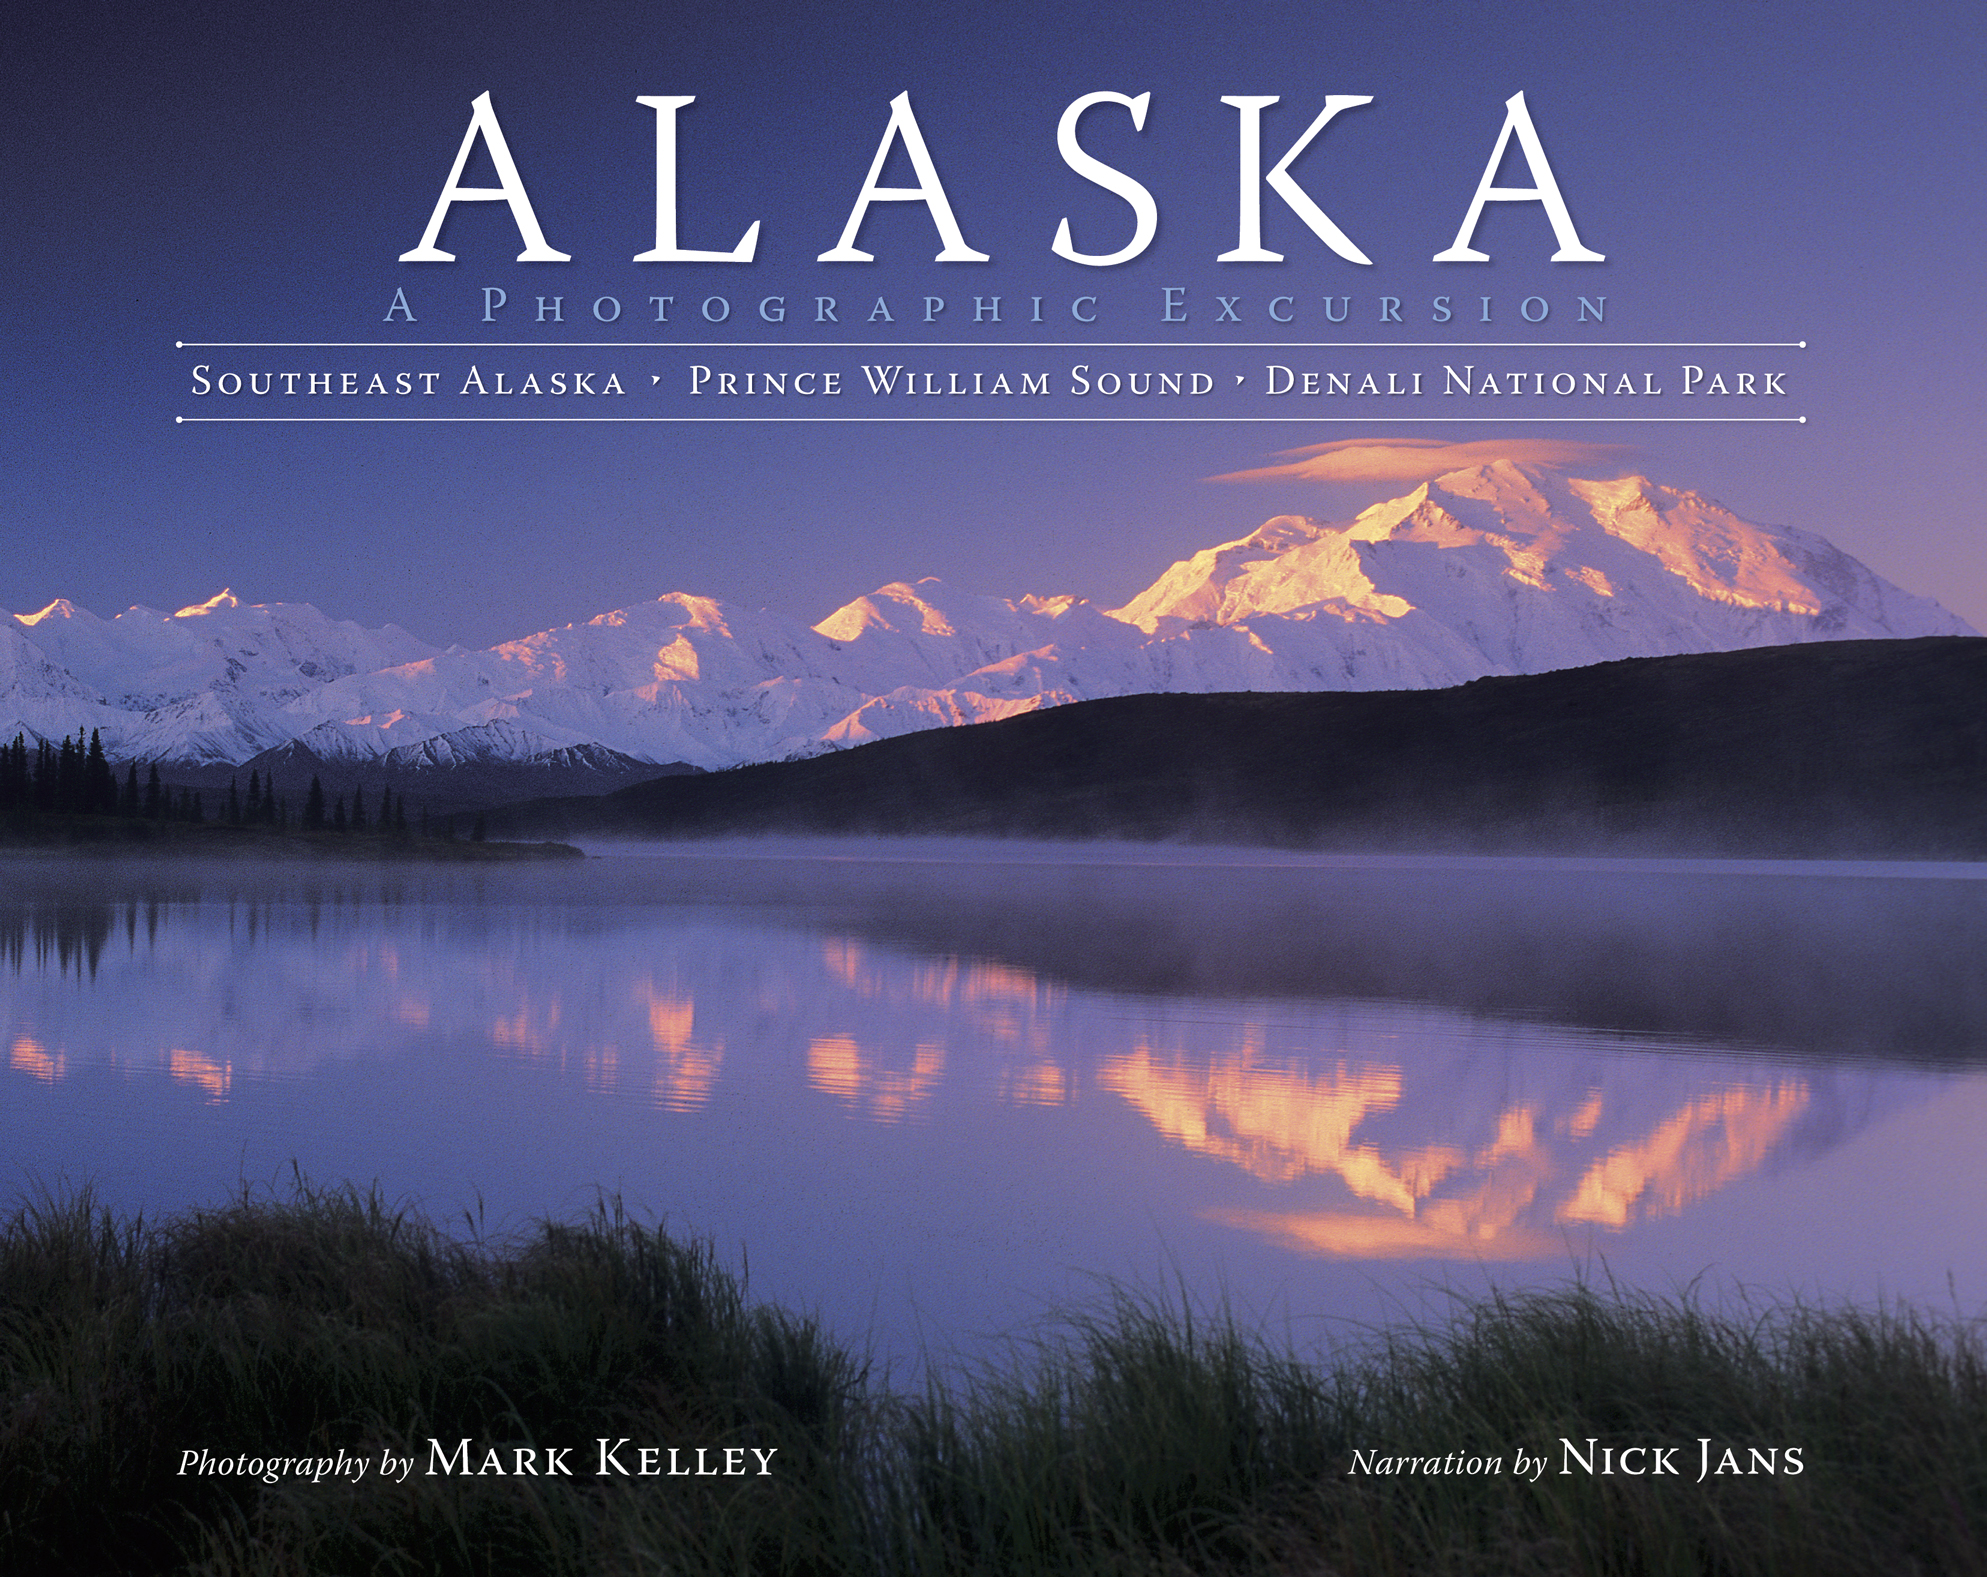 Alaska Photo Books